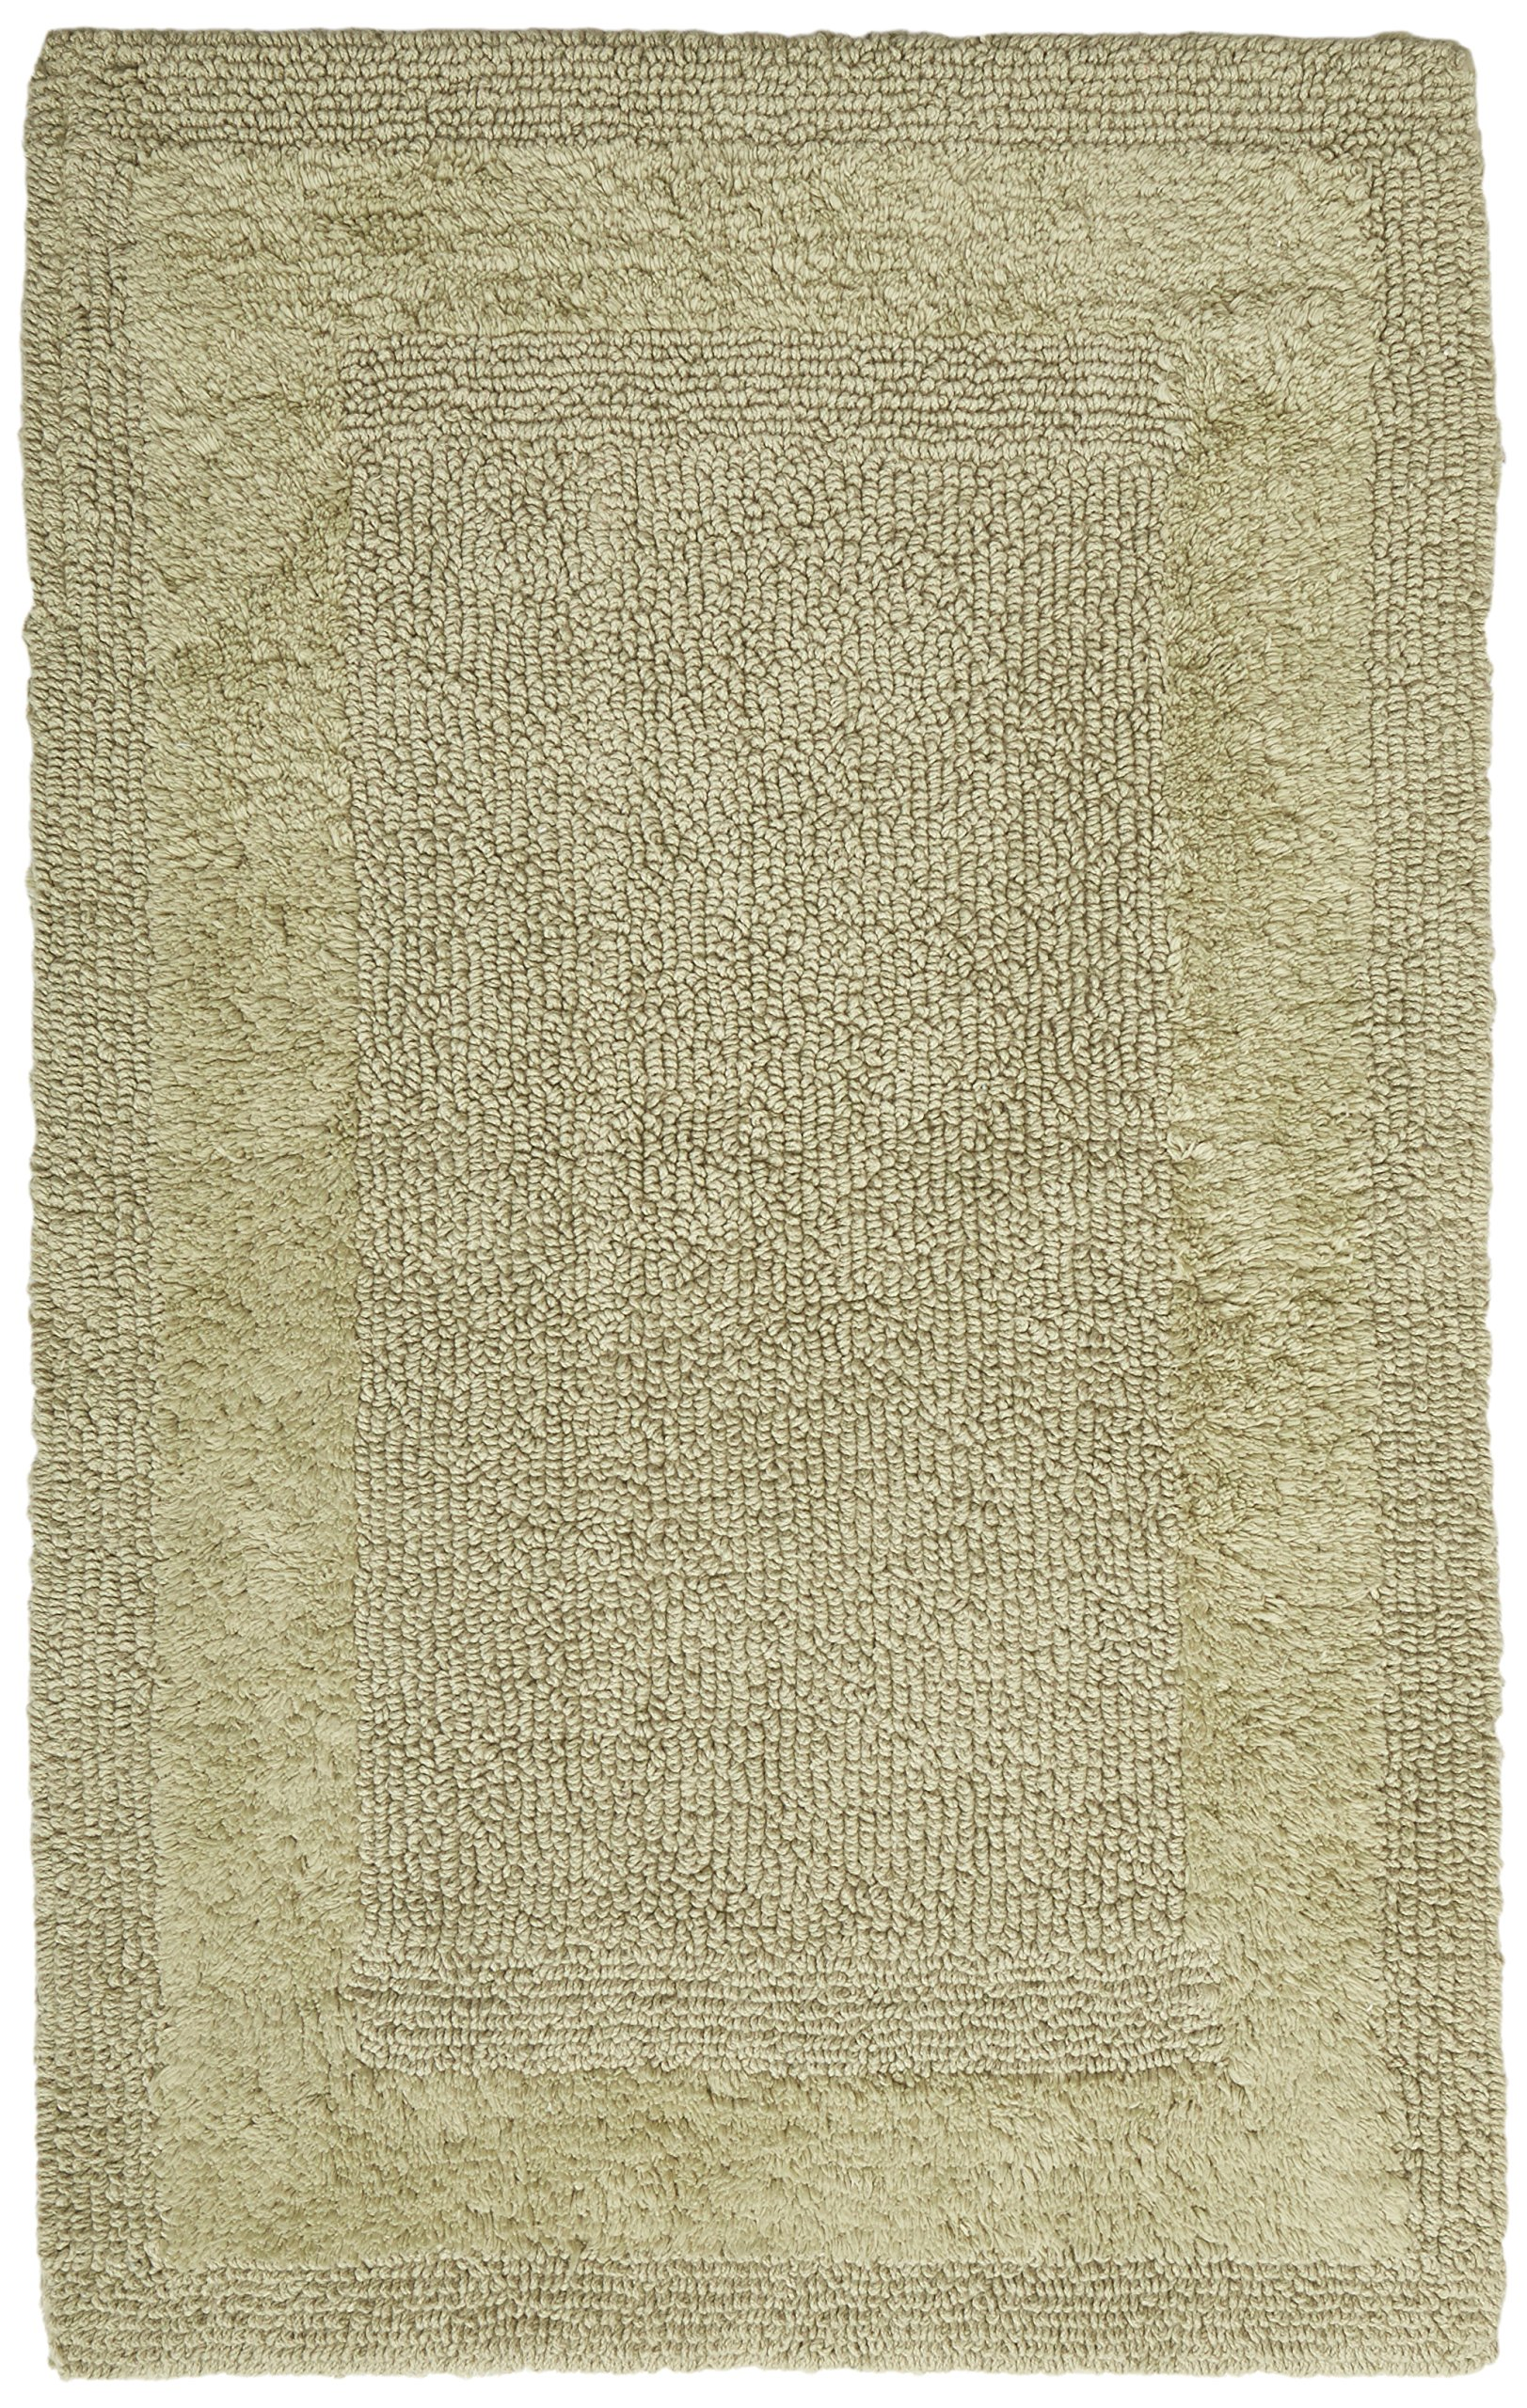 Best Rated In Bath Rugs & Helpful Customer Reviews